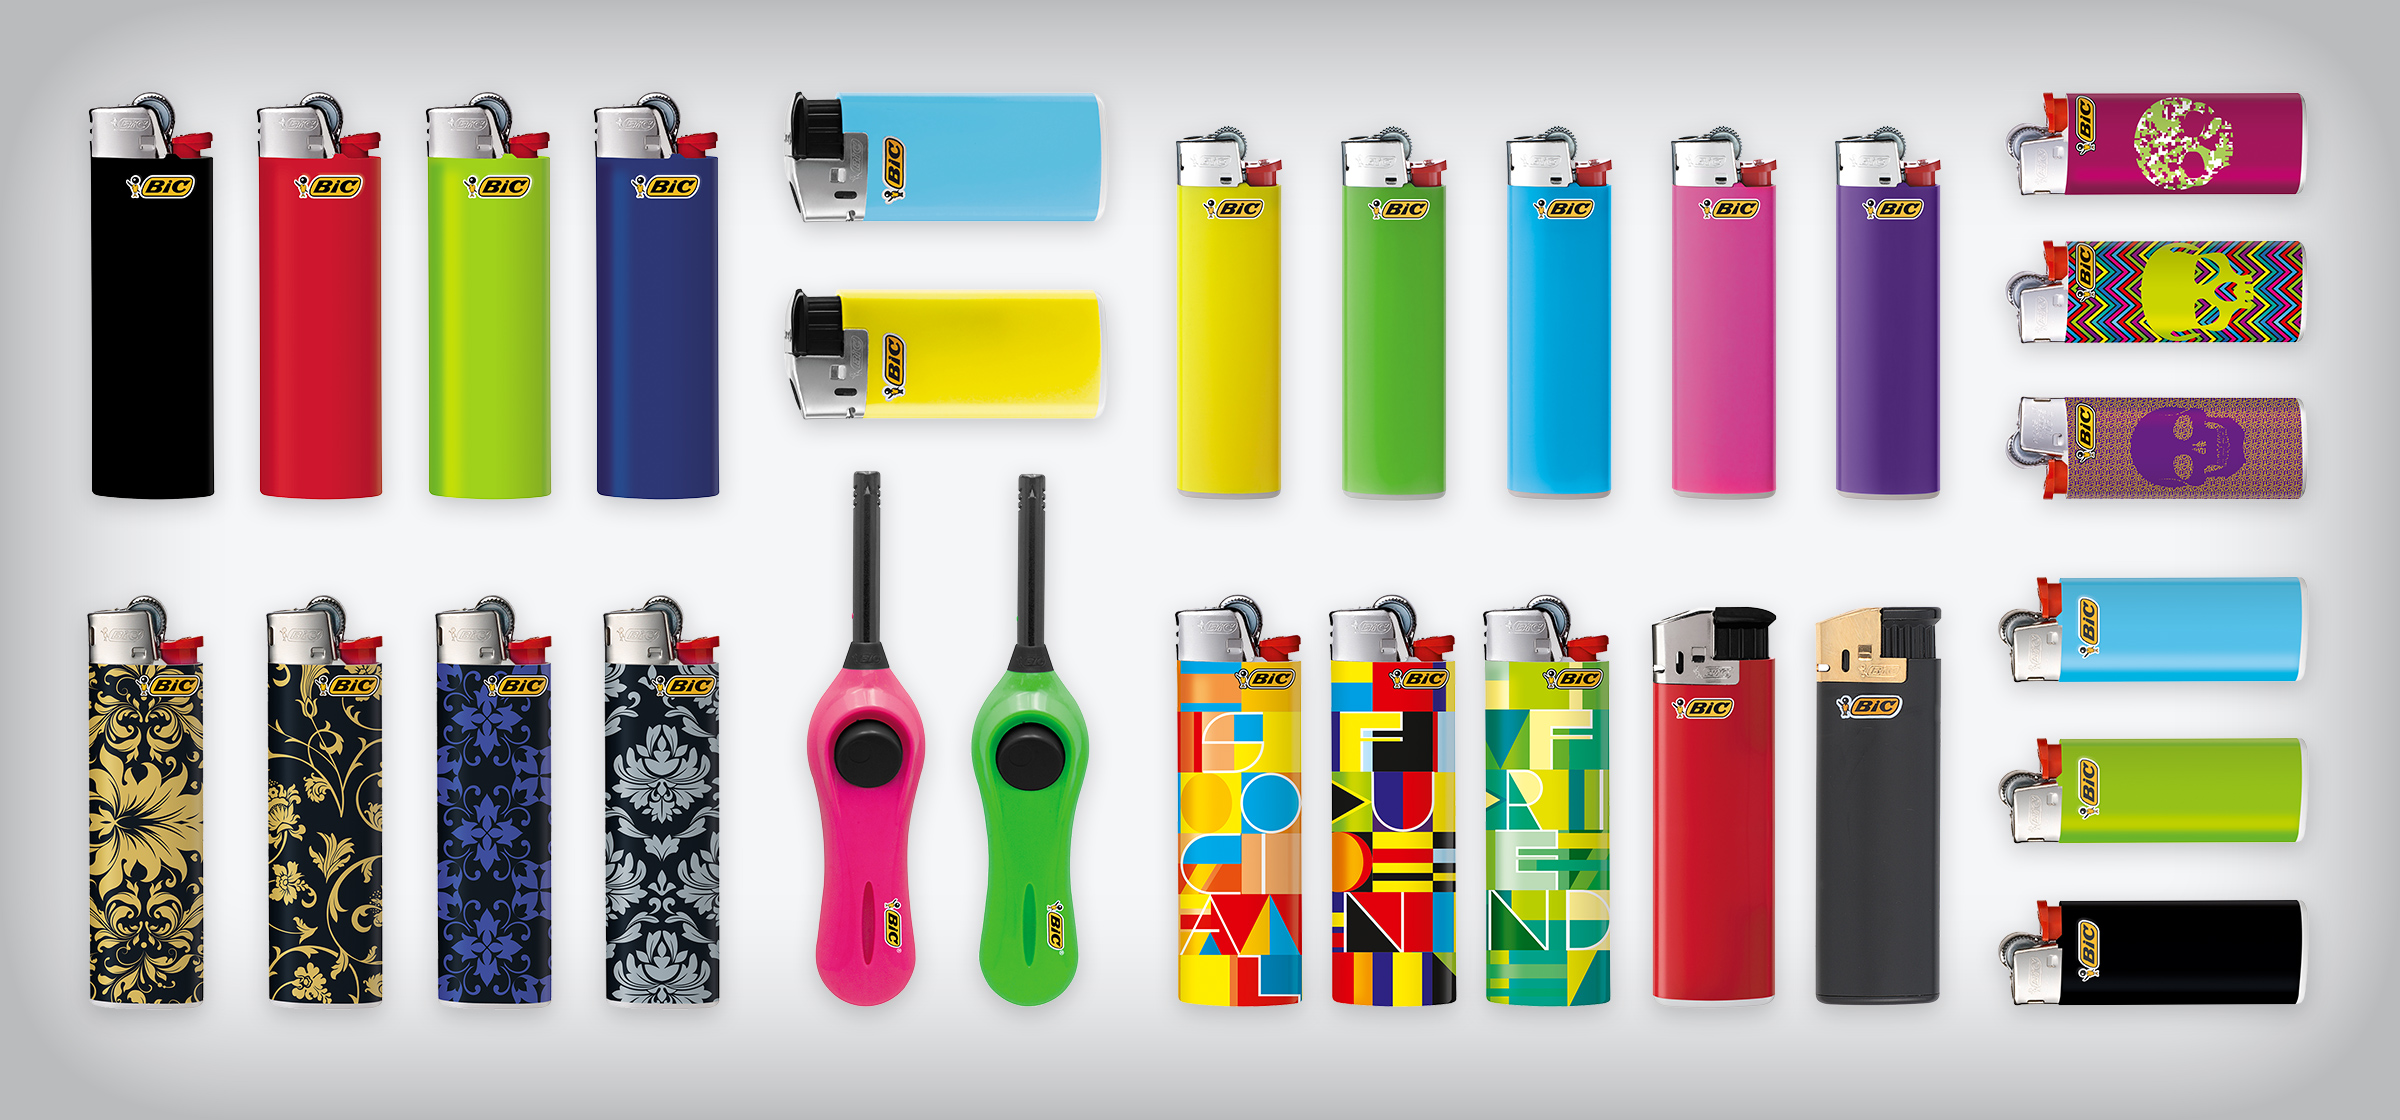 bunch of BIC lighters